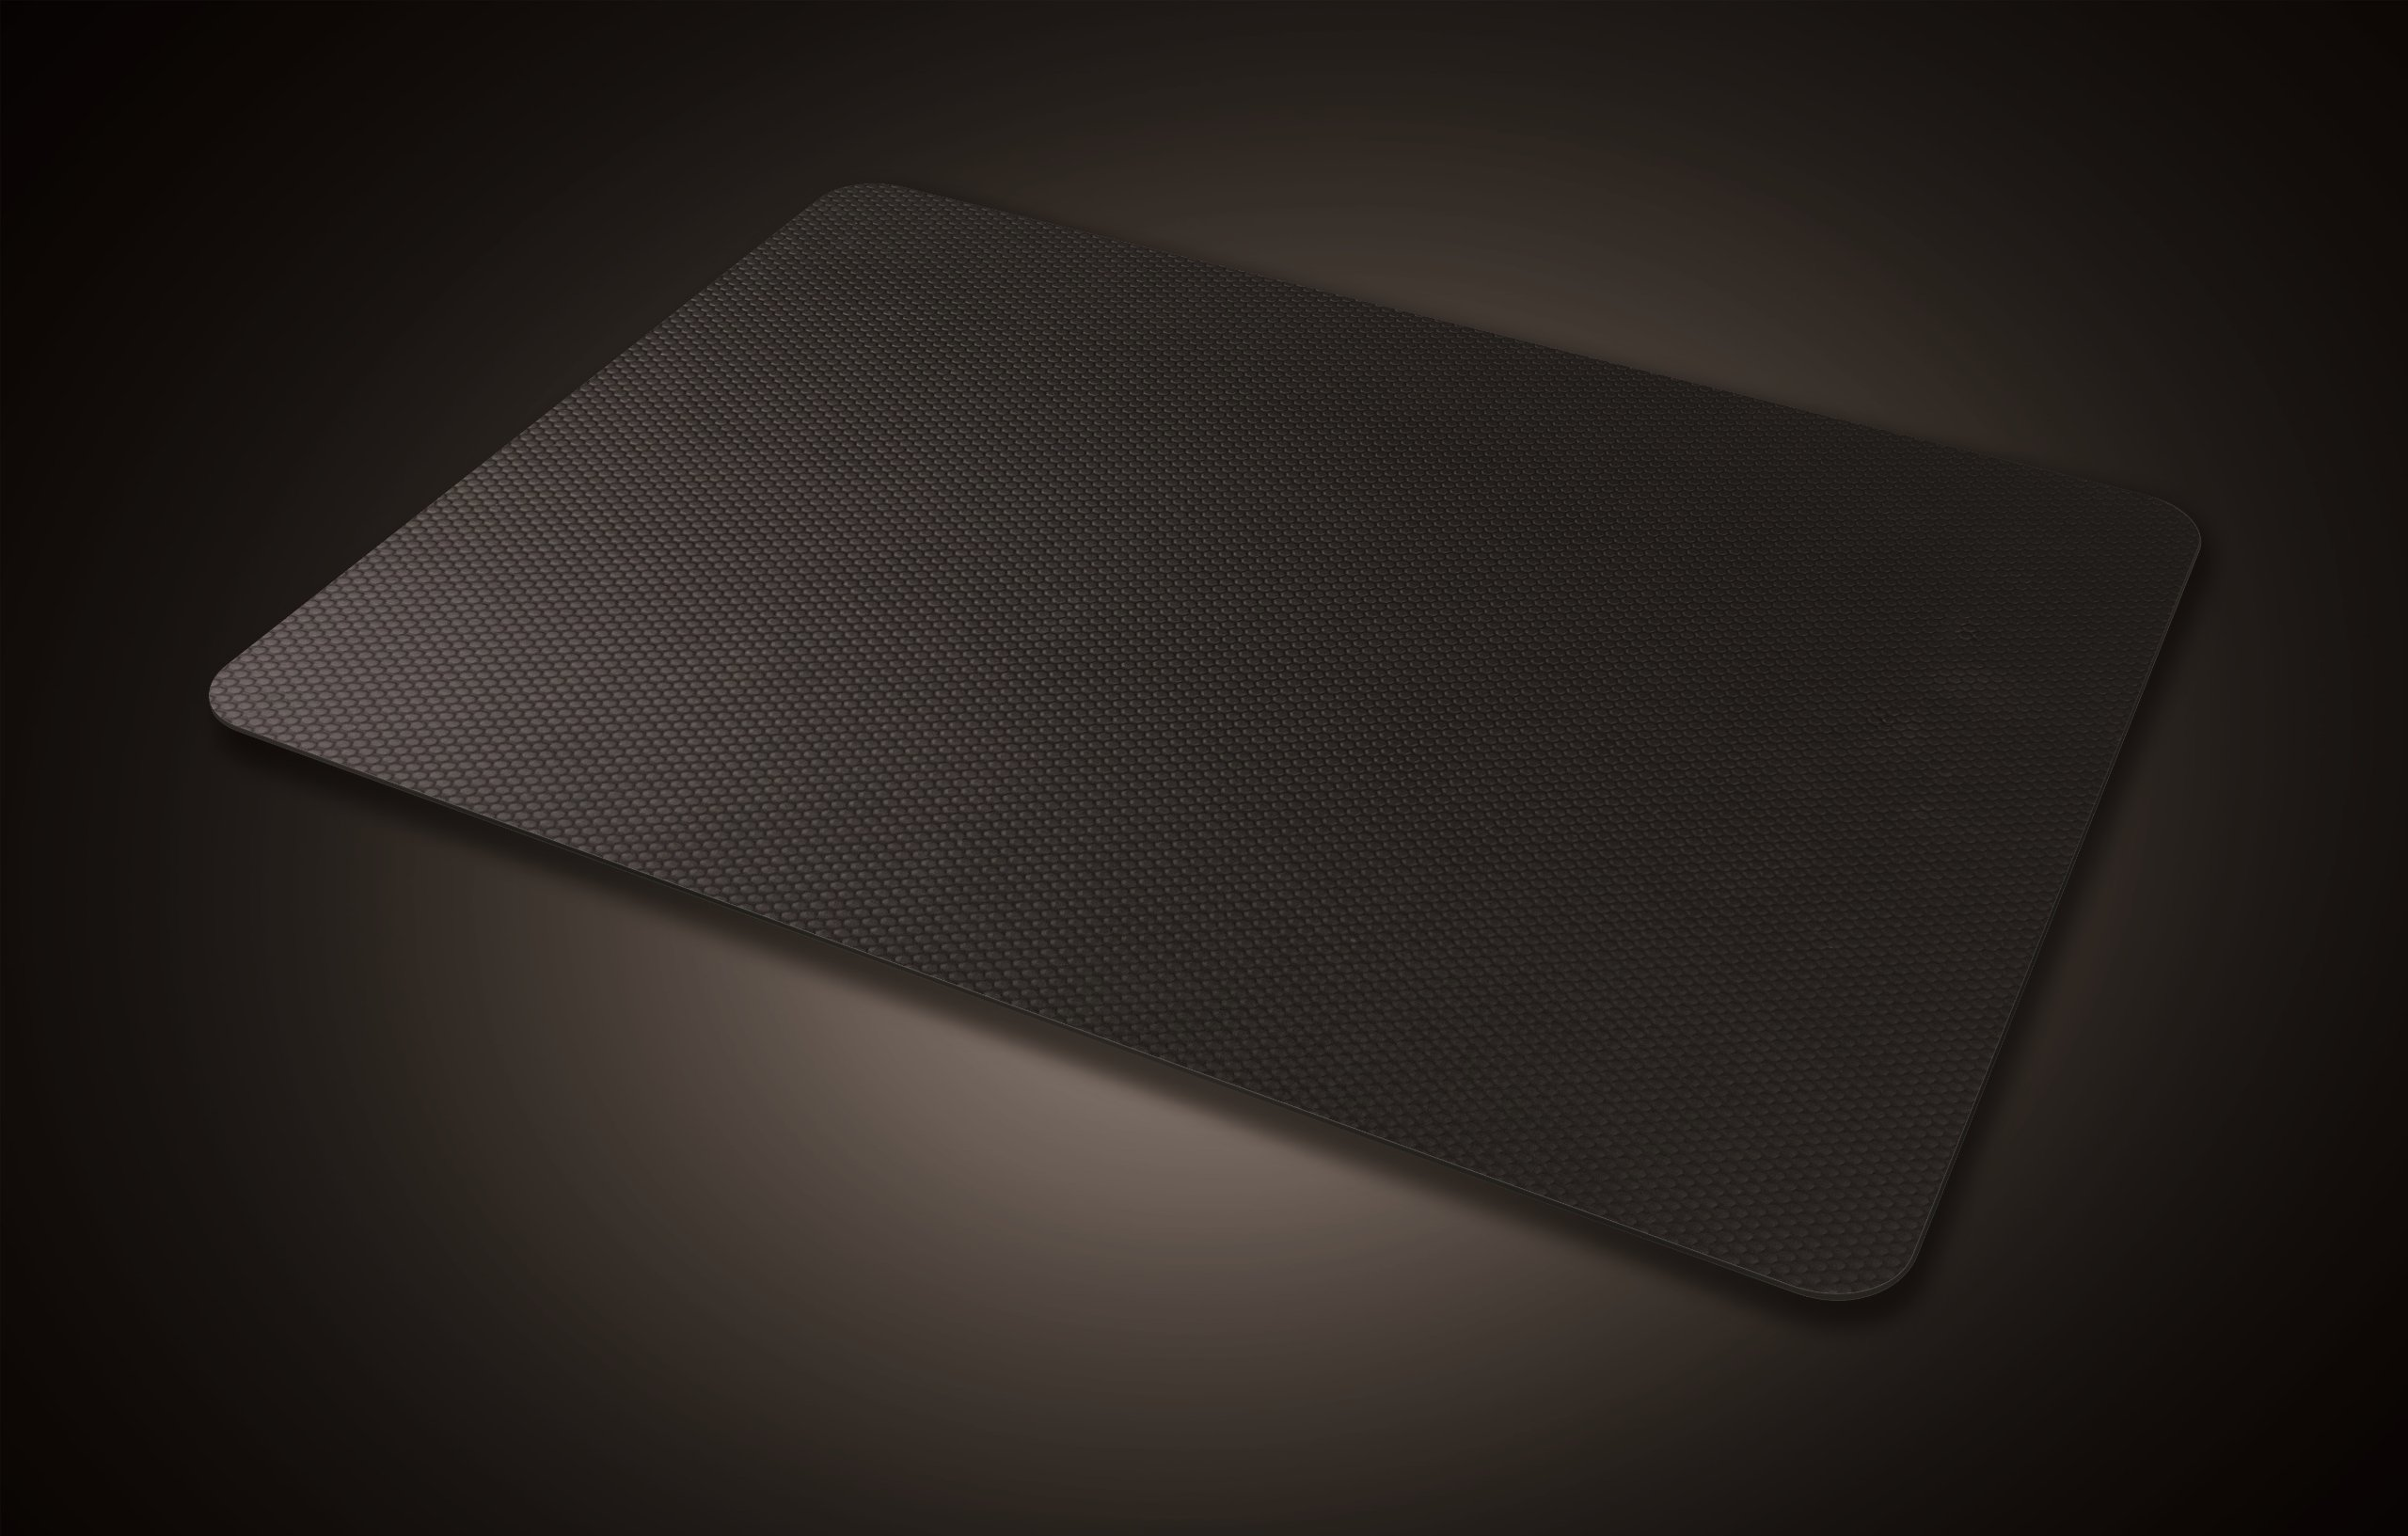 Razer Manticor: Optimized Tracking Surface - Aircraft Grade Aluminum Material - Microscopic Texture - Gaming Mouse Mat by Razer